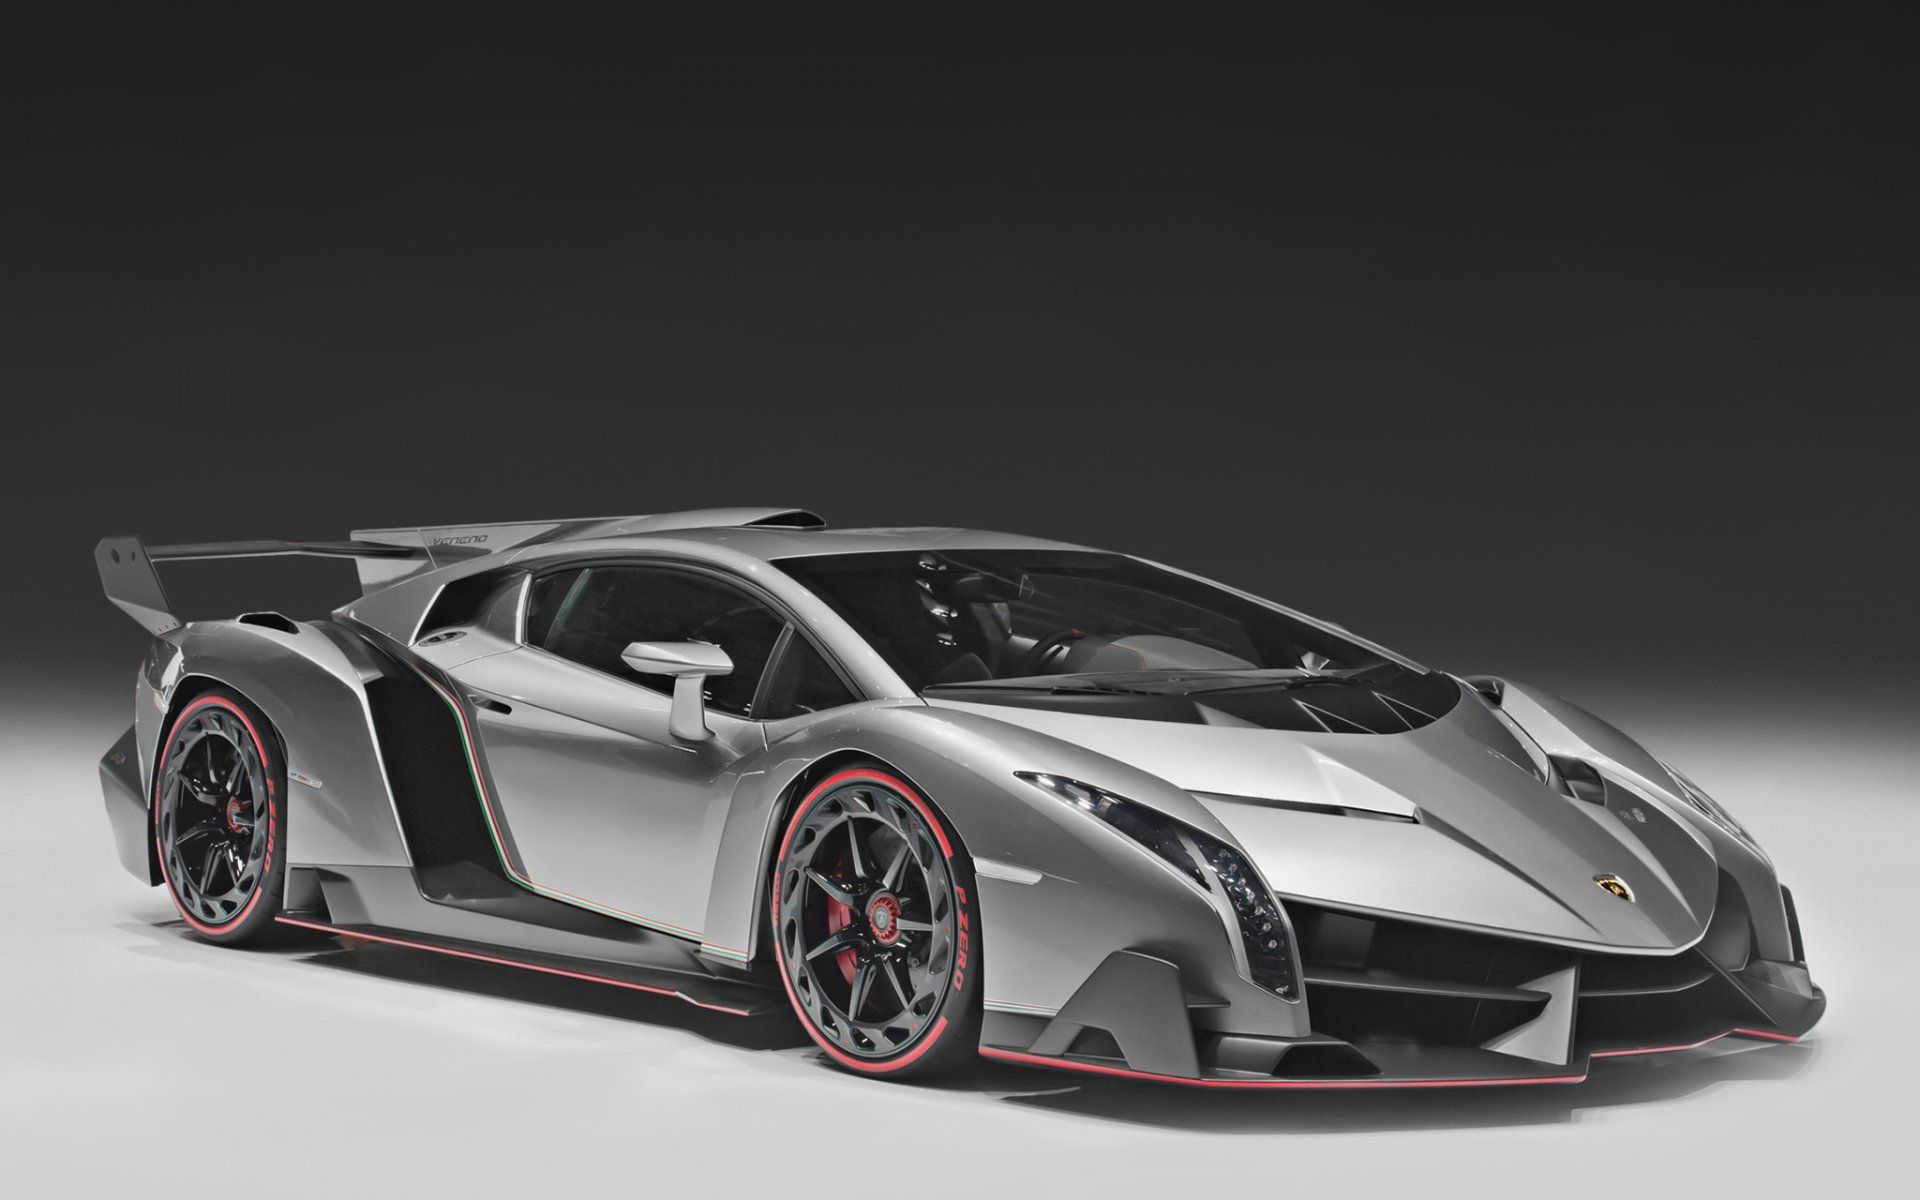 10 Lamborghini Supercars Wallpapers High Resolution Lamborghini Veneno Super Cars Car Wallpapers